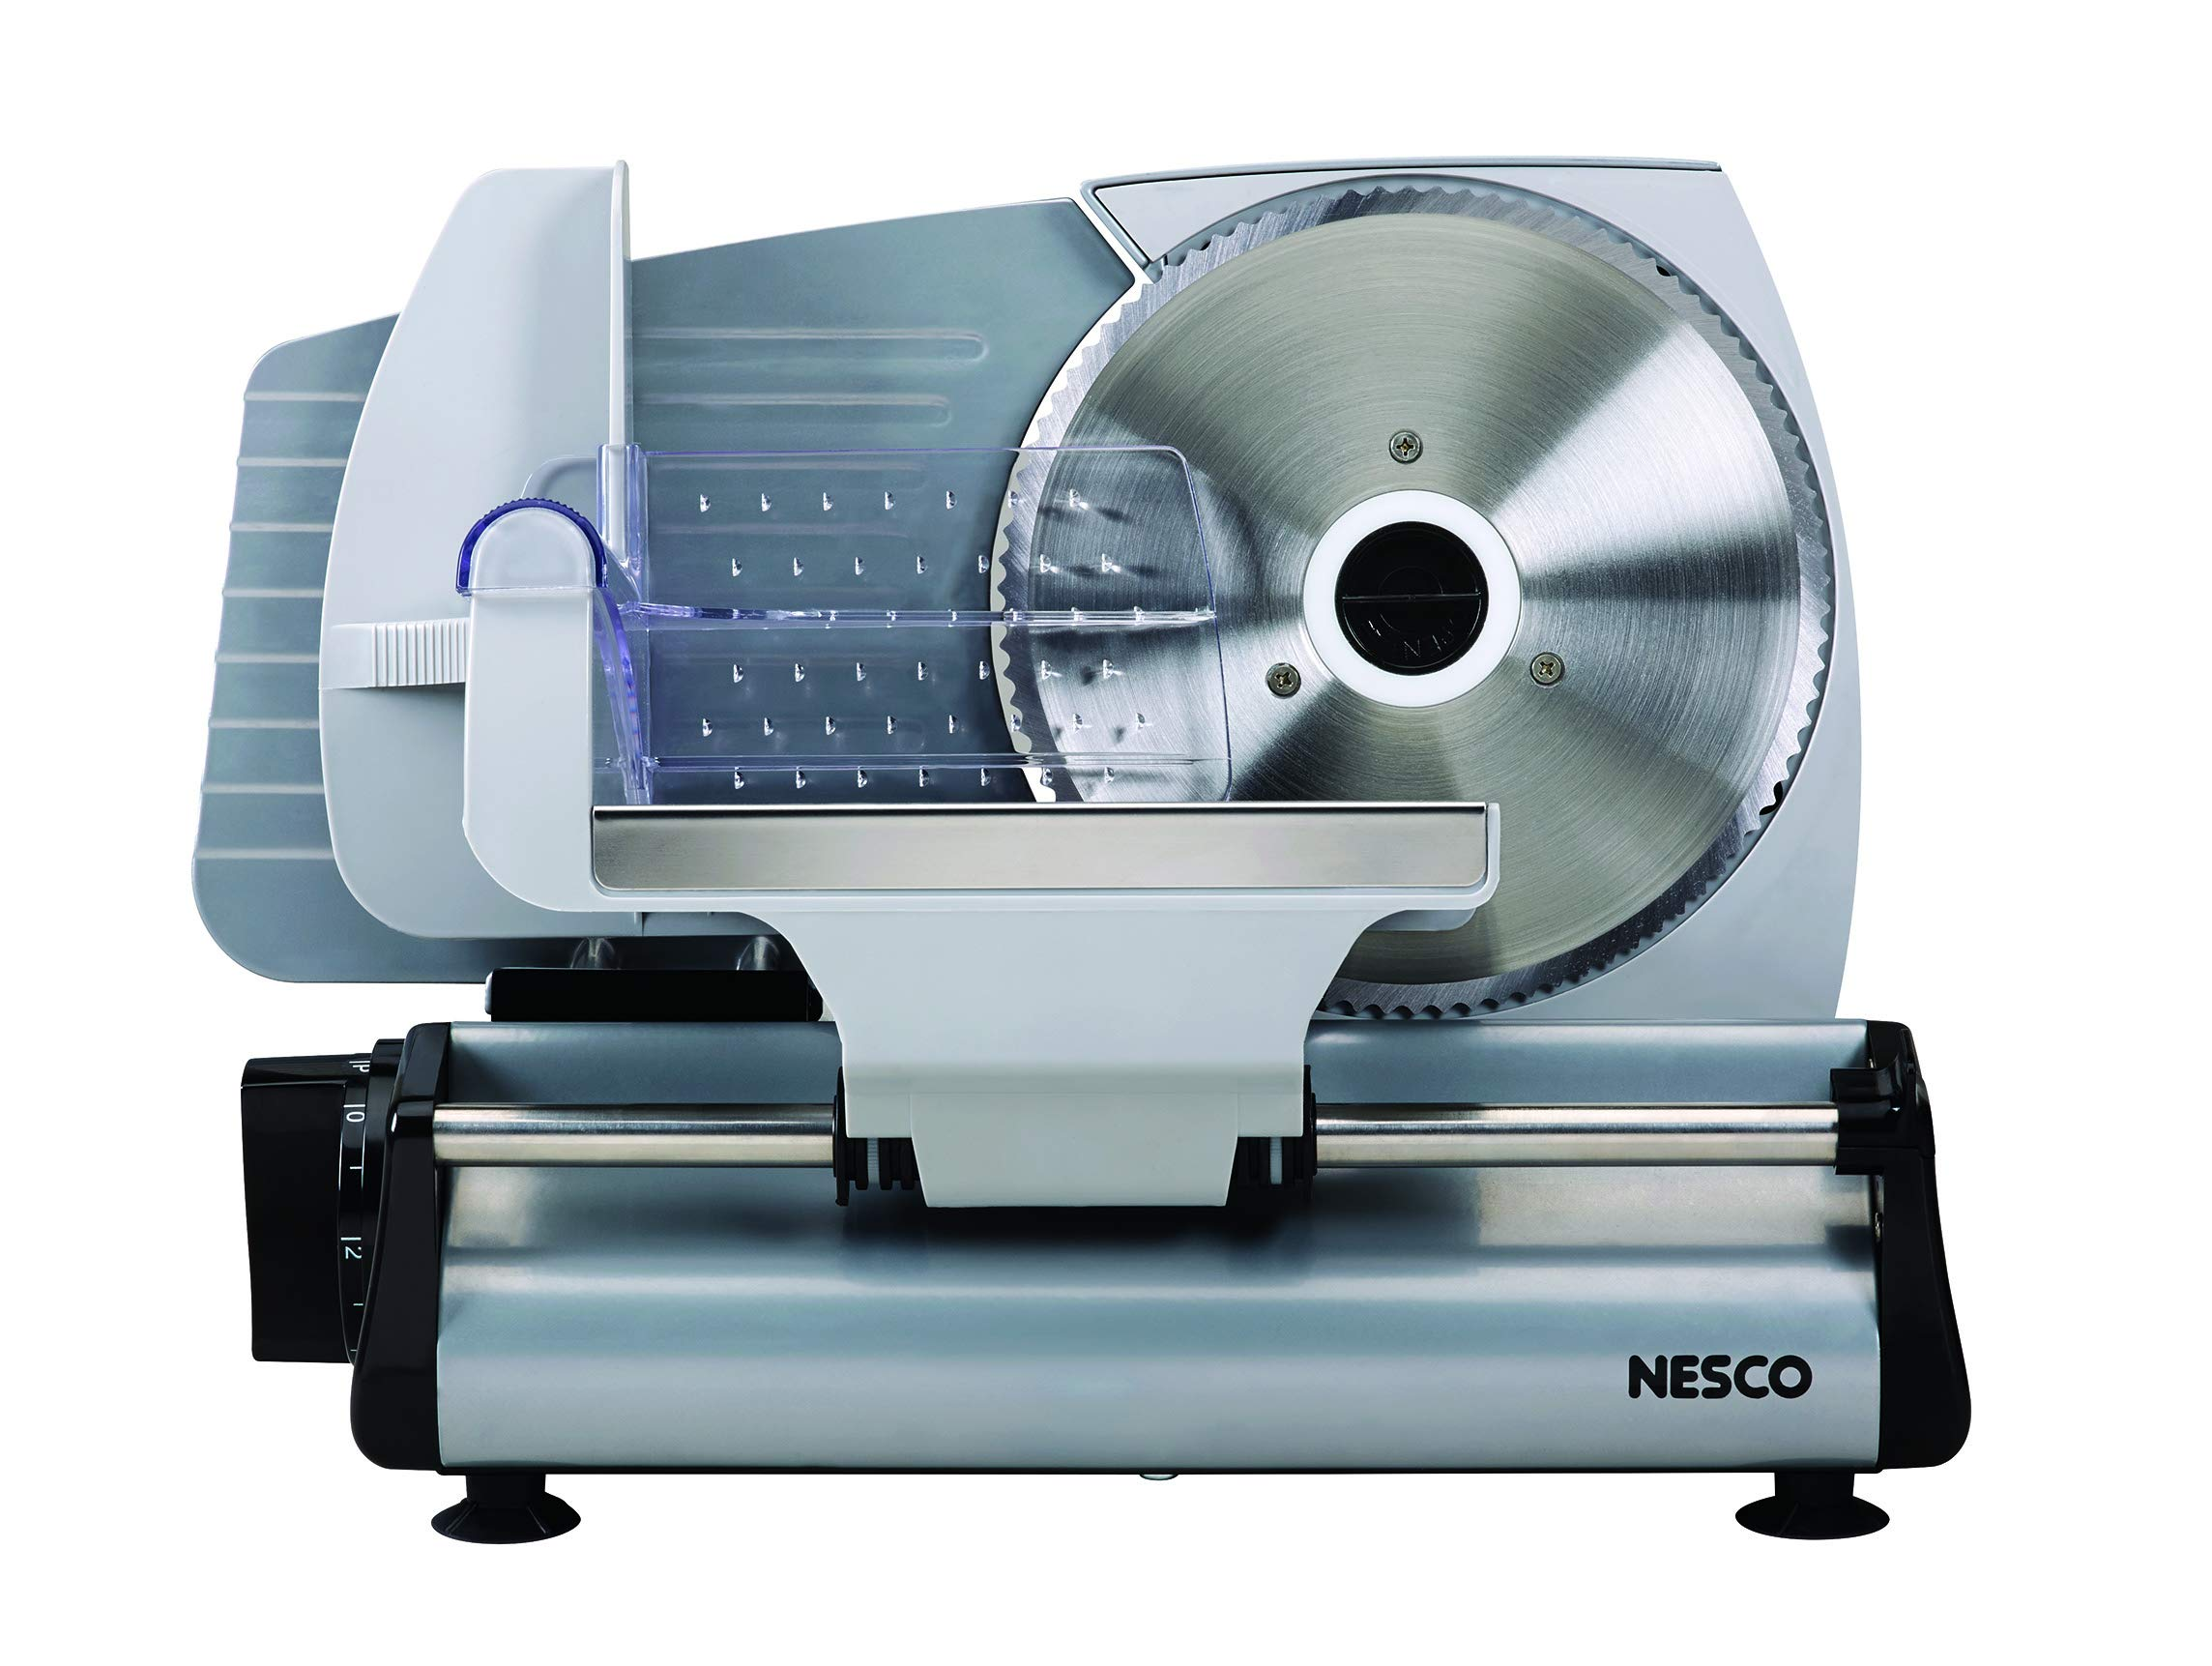 NESCO FS-200, Food Slicer, Gray, Aluminum with 7.5 inch Stainless Steel Blade, 180 watts by Nesco